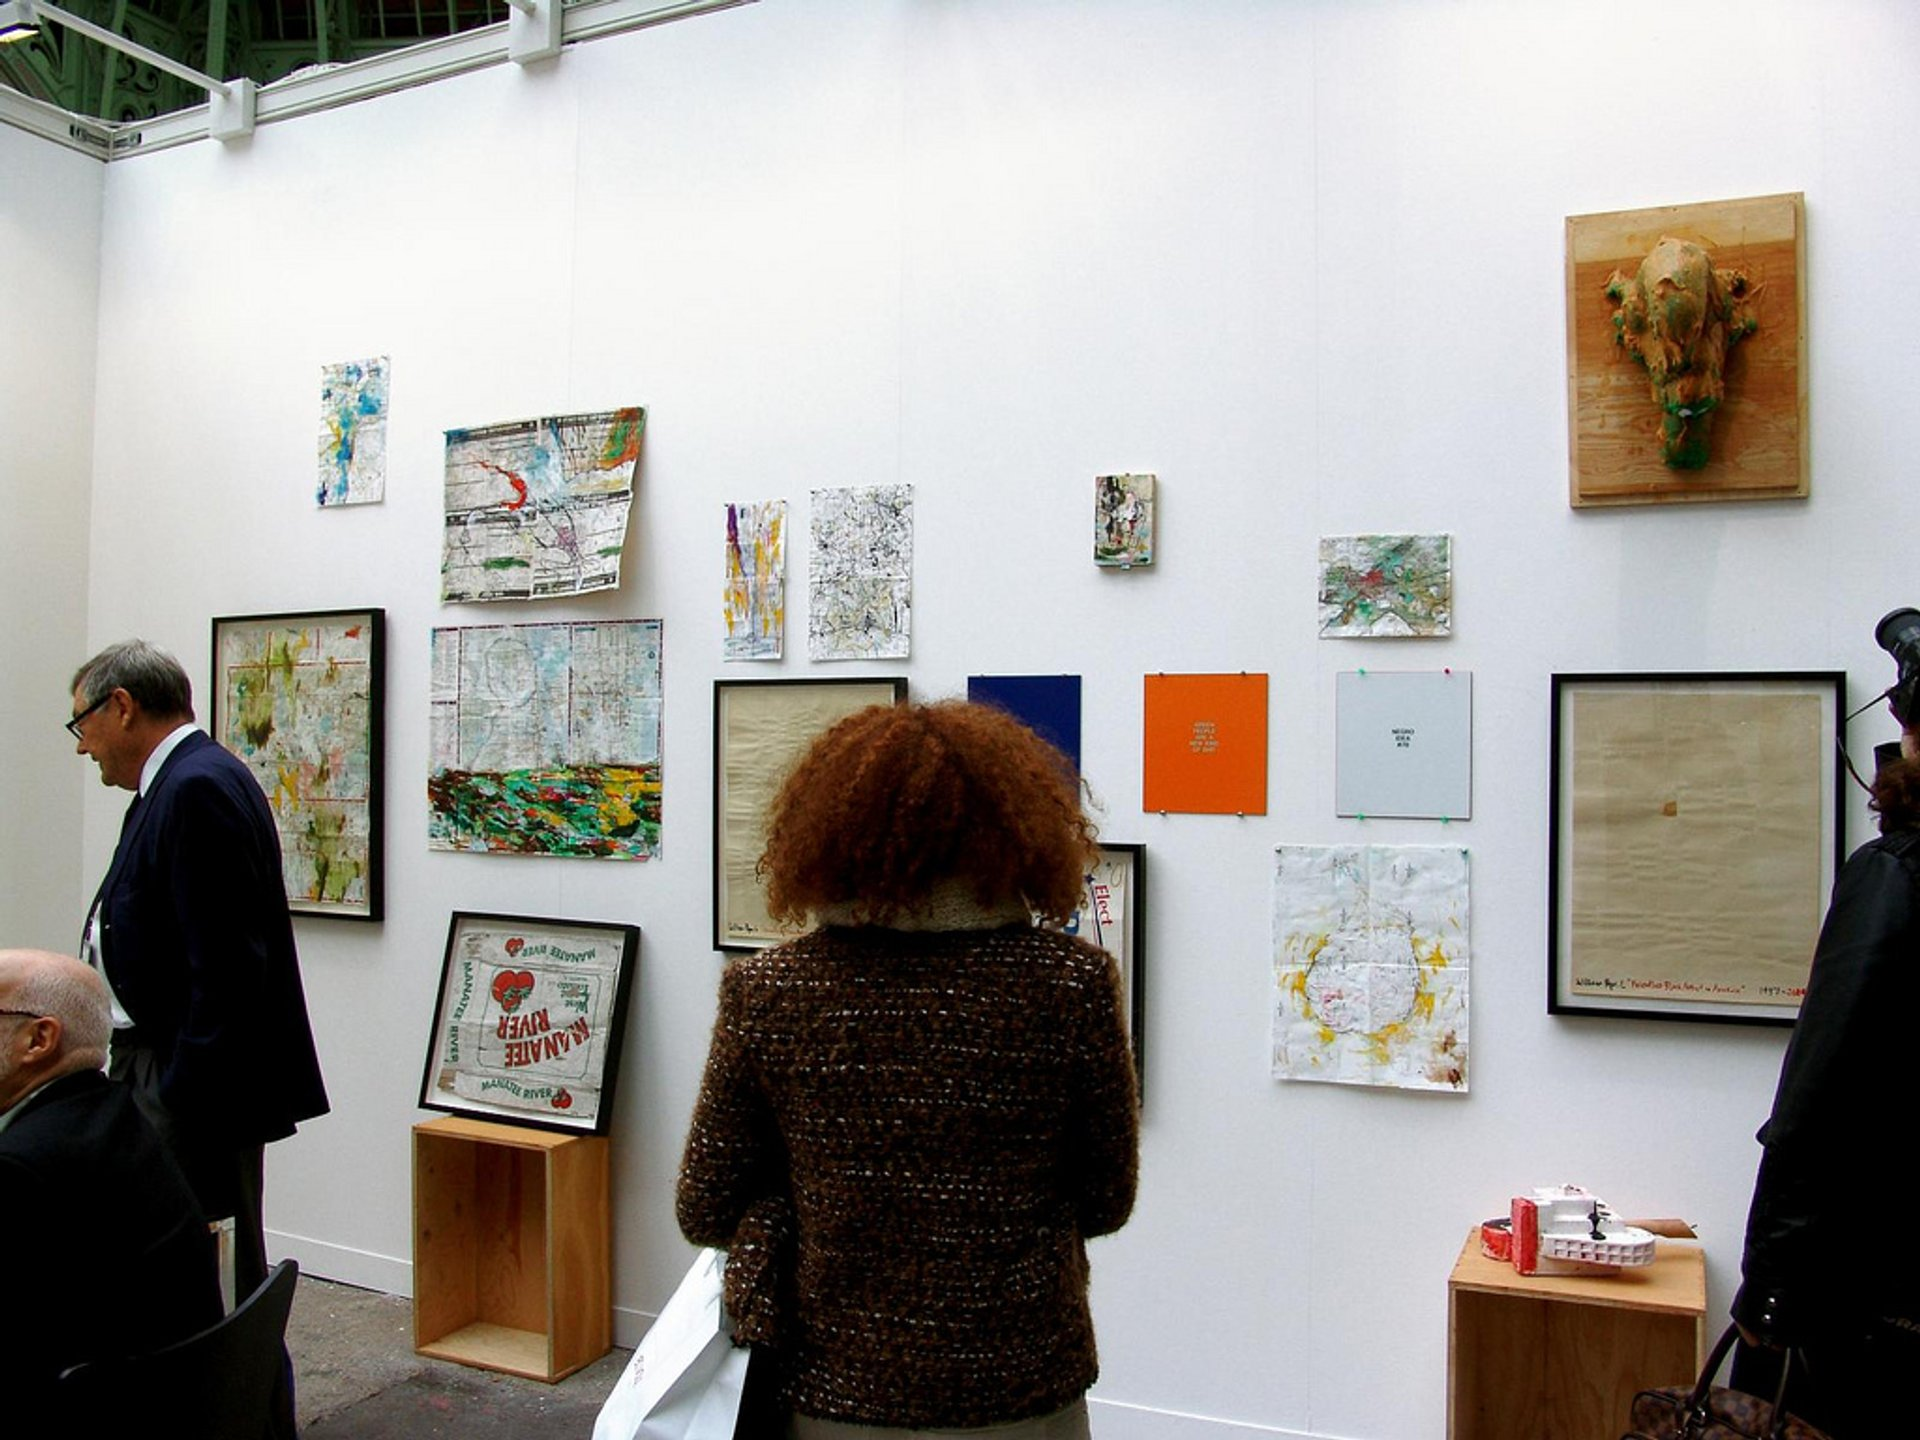 Best time for Foire Internationale d'Art Contemporain (FIAC) 2020